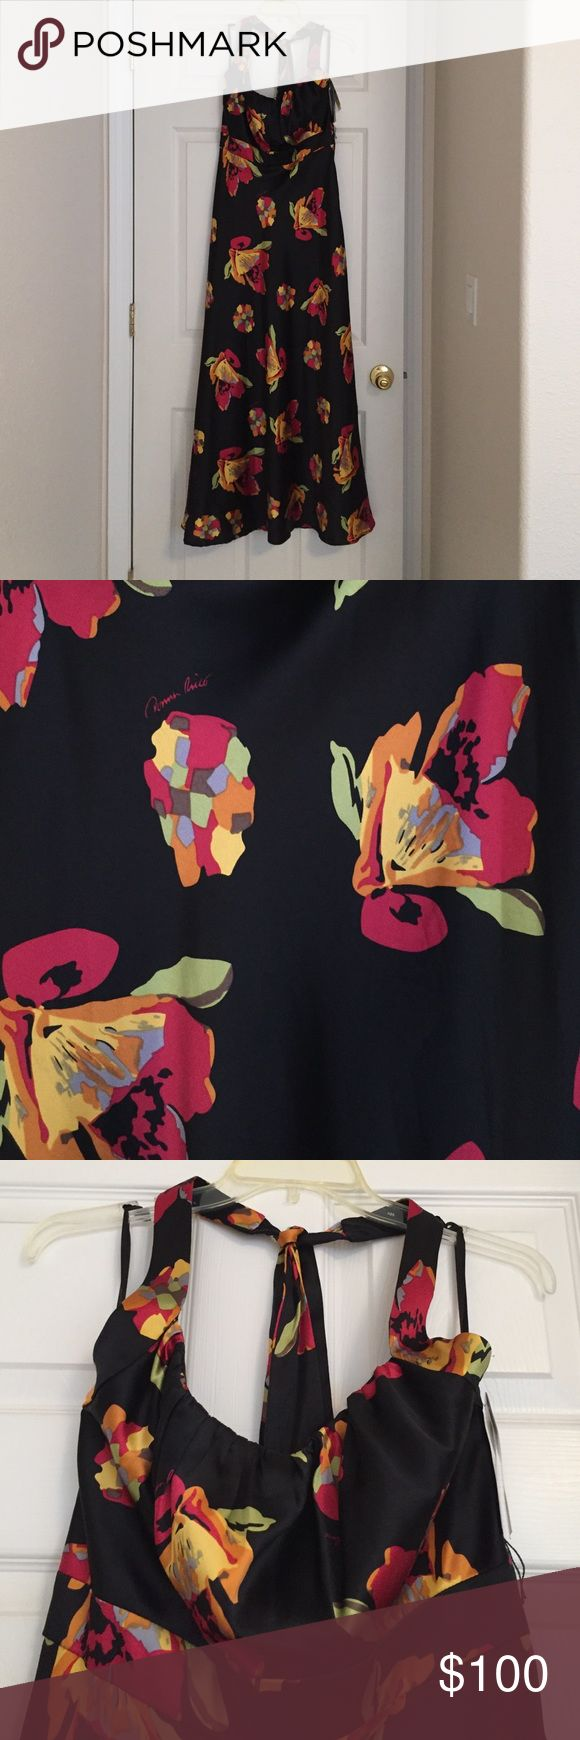 Black floral dress. Brand New! Still with tags! Never been worn. Black dress with multi color flowers. Comes with a stretchable belt. The dress has a halter neck that you tie in the back. Donna Ricco Dresses